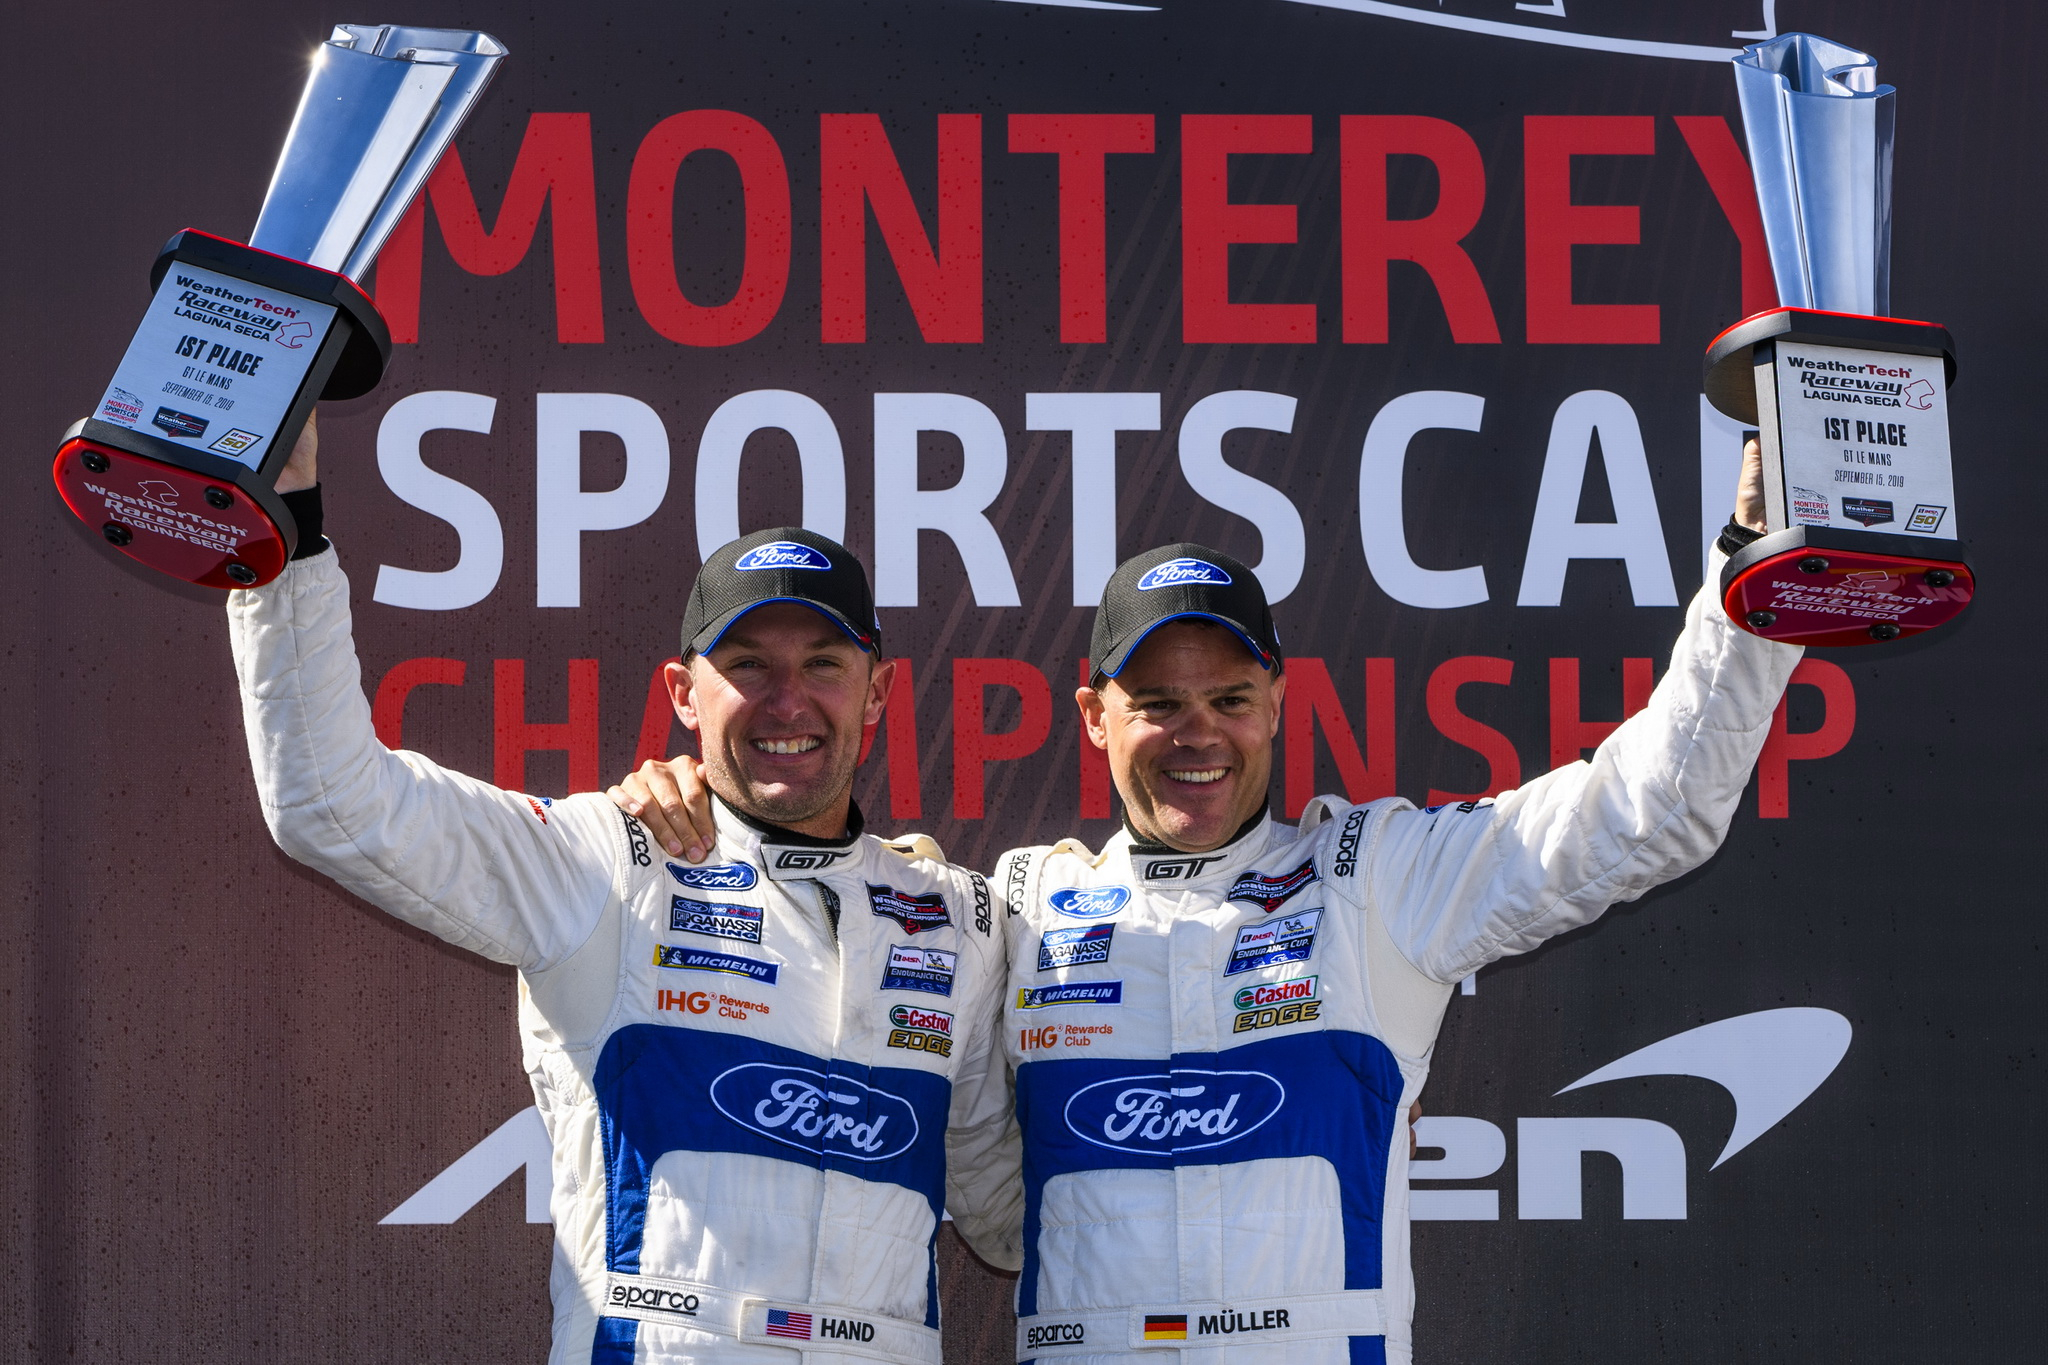 Joey Hand, Dirk Müller and No. 66 Ford GT Team Combine for Dominant Laguna Seca Win